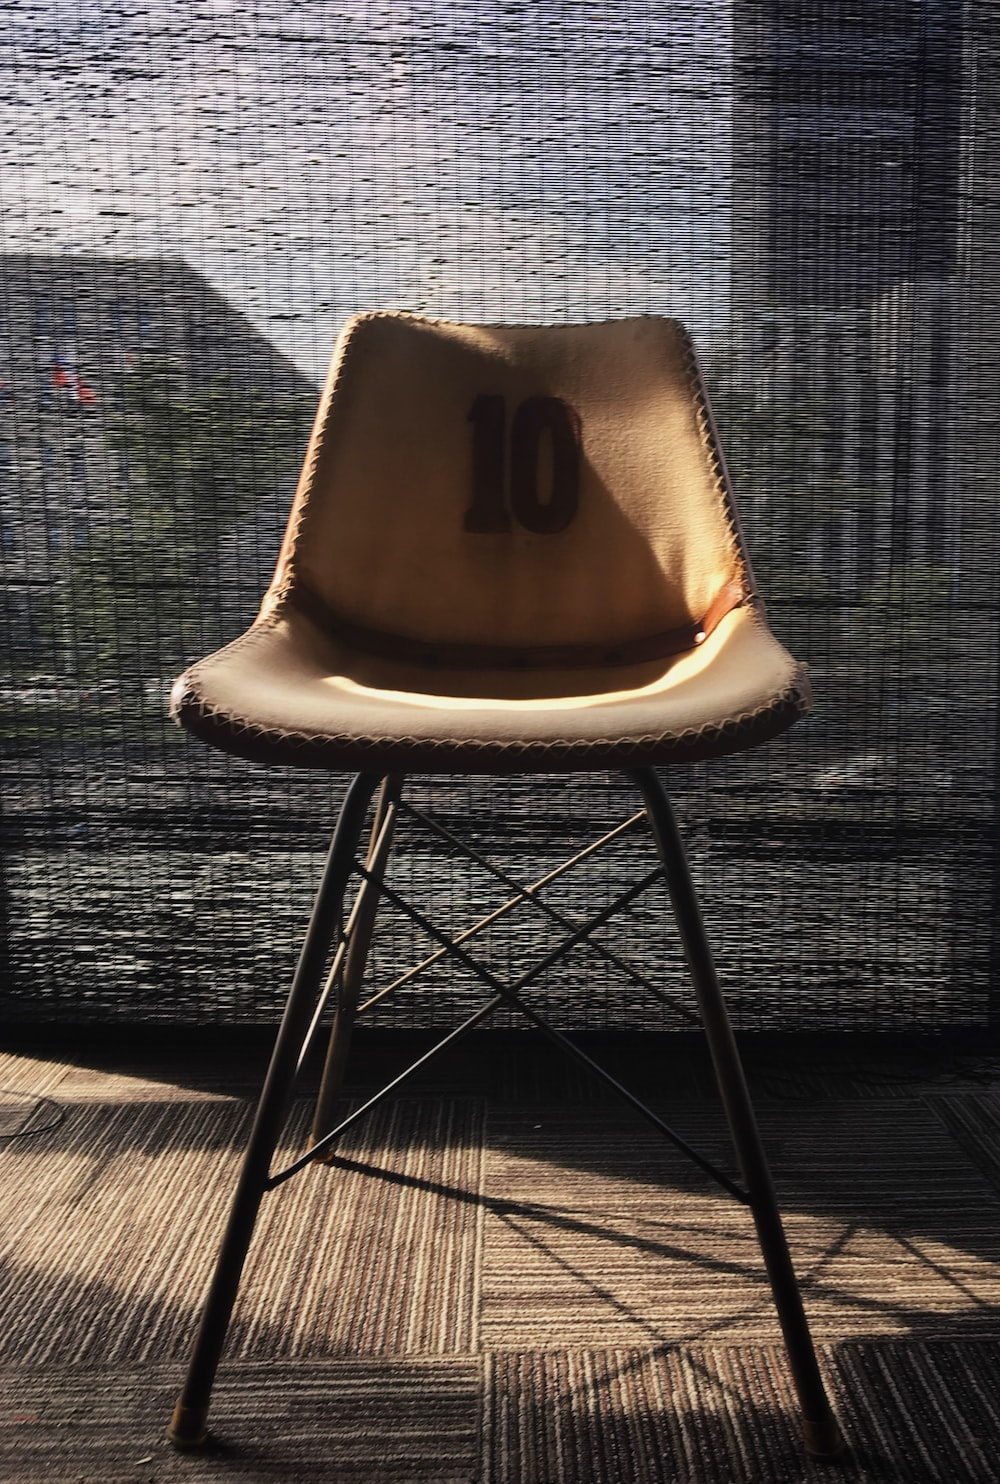 brown padded chair